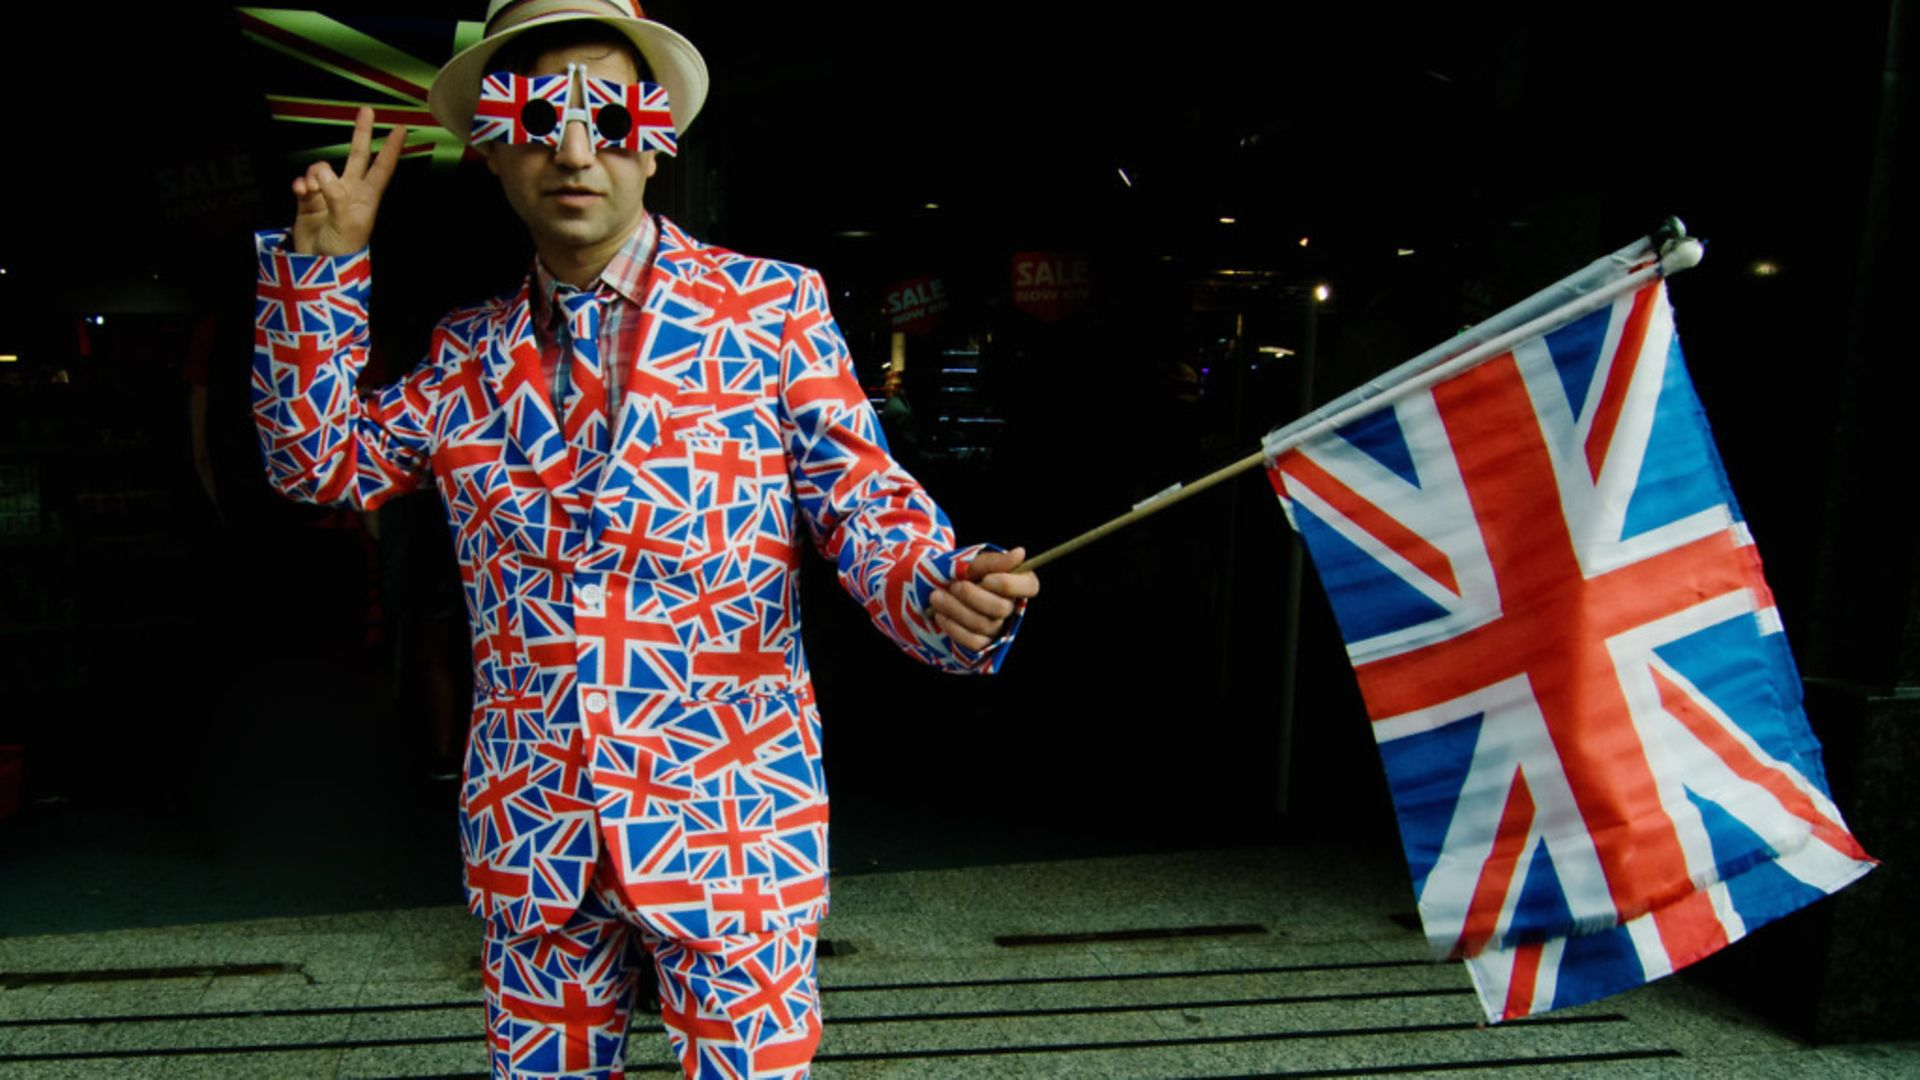 A man wearing a costume in the colors of the United Kingdom flag as Britain voted for Brexit - Credit: PA Images